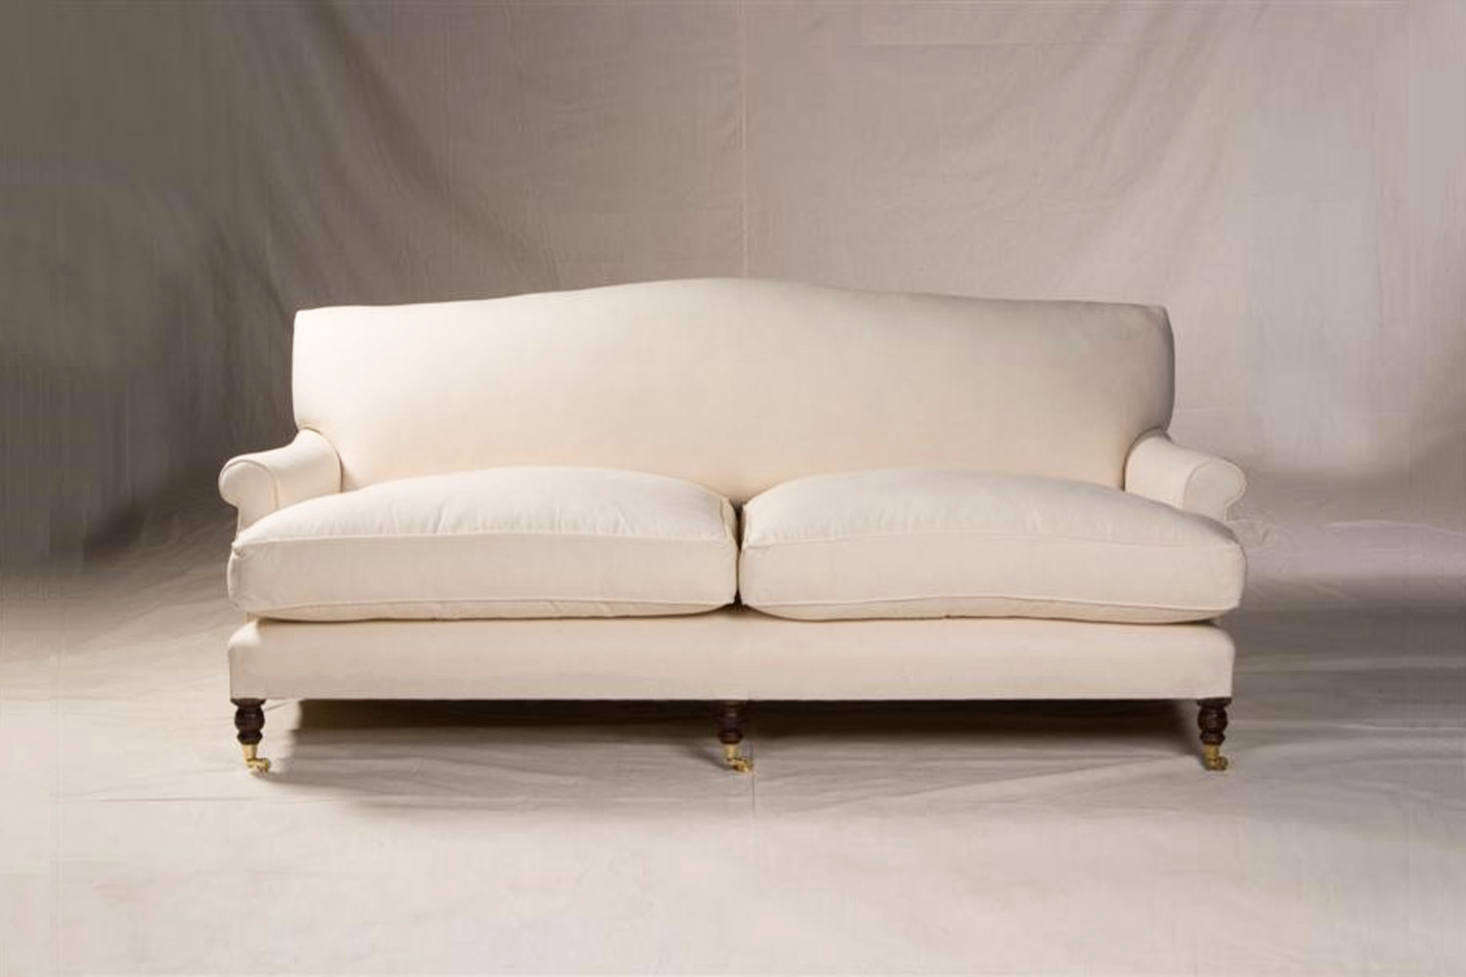 The George Sherlock sofa is the exemplar English roll arm sofa. Shown here is the Extended Mac Sofa 2-Seater available through George Sherlock directly or at Ruby Beets. Prices must be requested directly through either avenue.